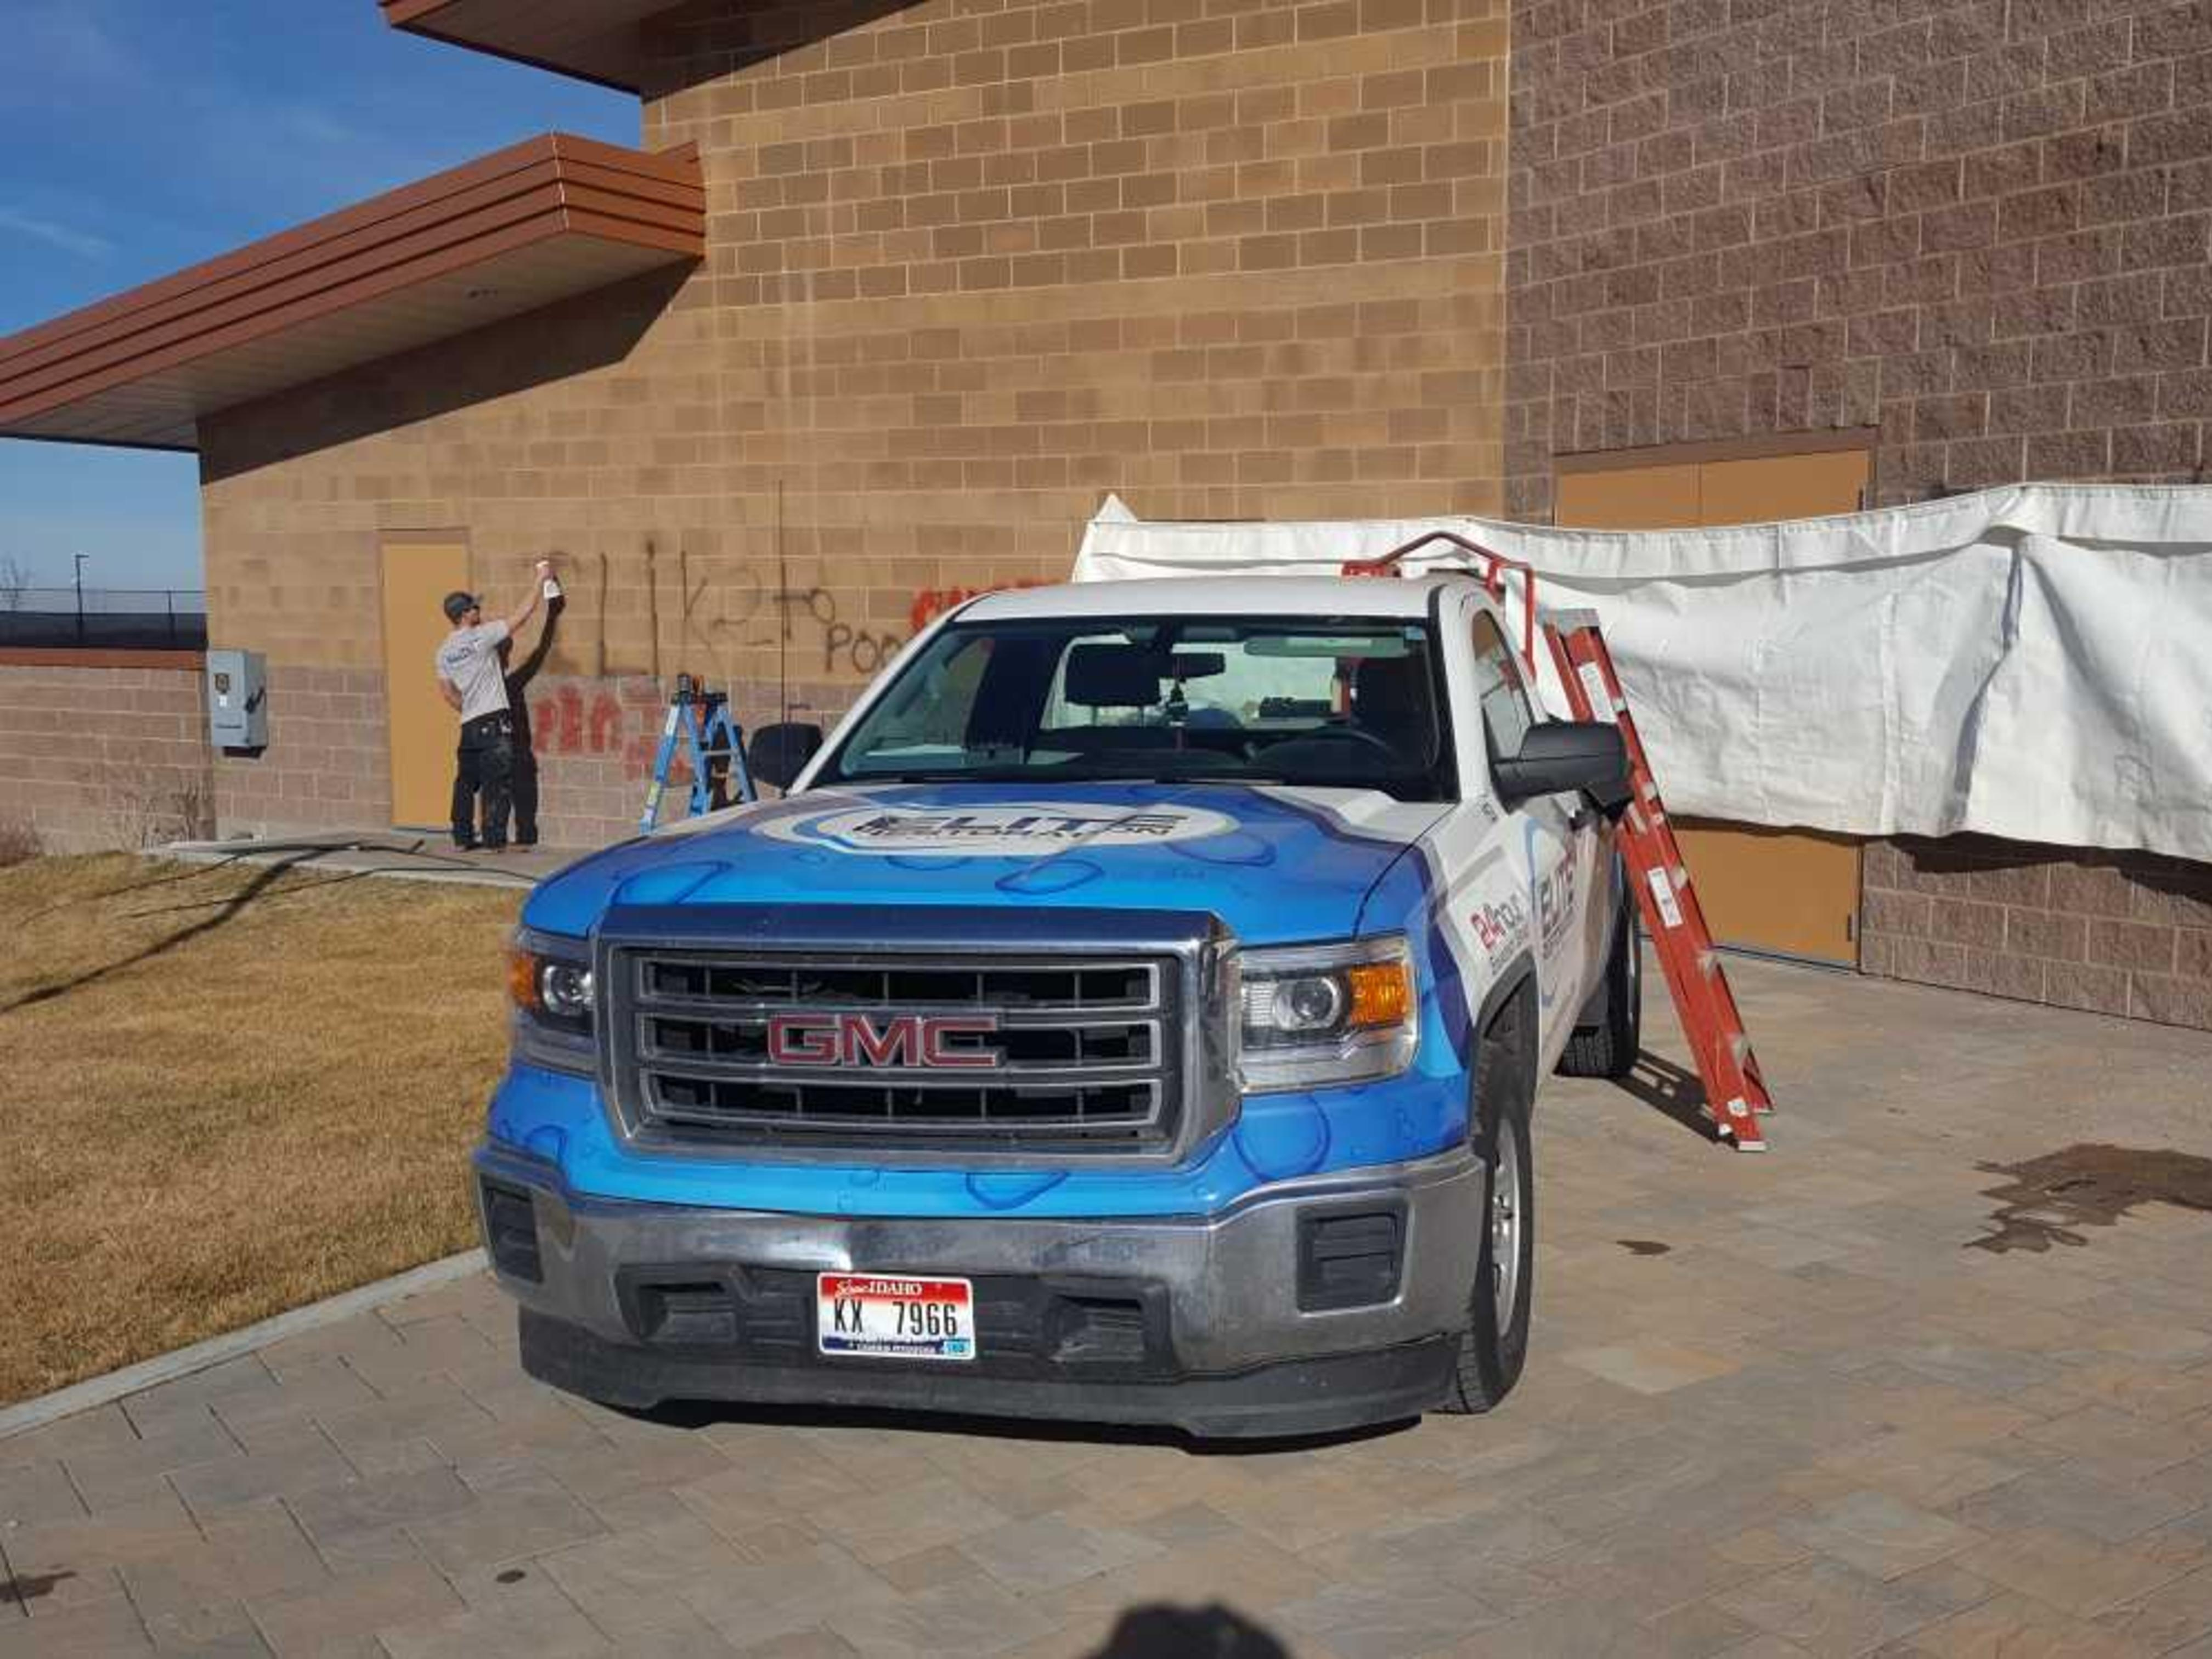 Image: Elite Restoration truck in the front of the Portneuf Wellness Complex as restoration techs remove graffiti.